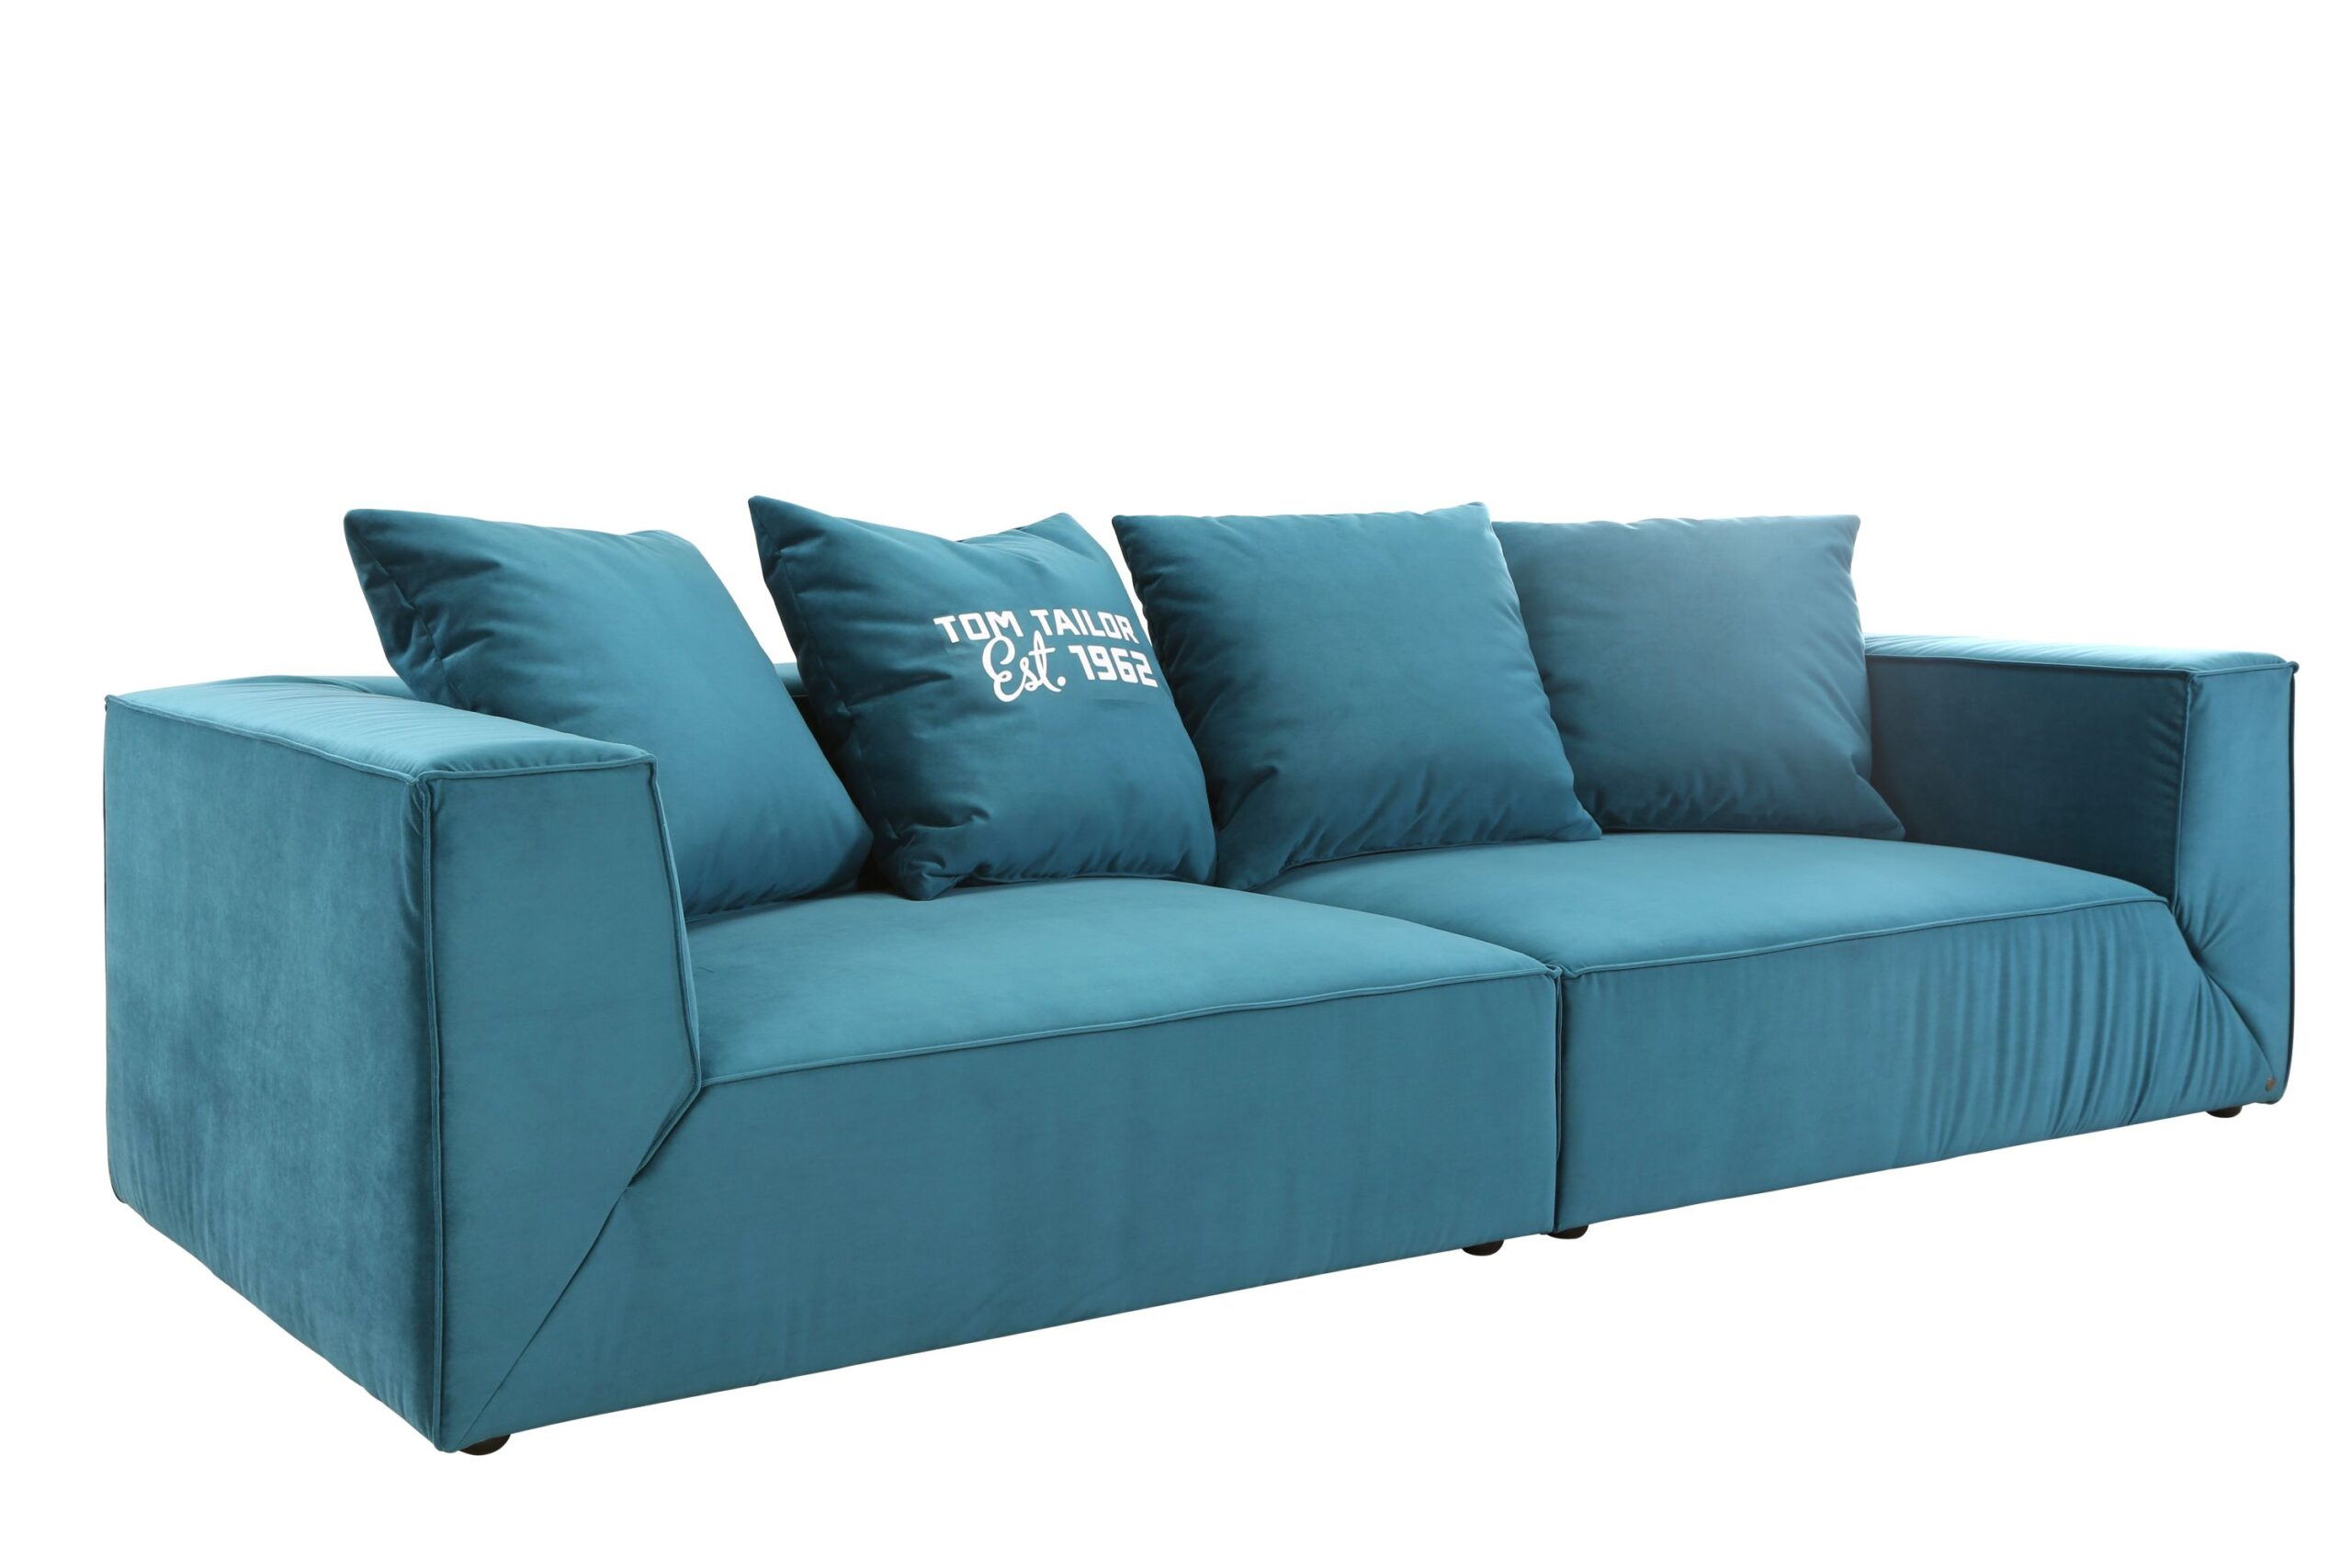 Full Size of Sofa 2 Sitzer Tom Tailor Einzelsofas Polstermbel Mbel Lederpflege Rund Hannover Alternatives Baxter Hay Mags Schlafsofa Liegefläche 180x200 Polyrattan Big Mit Sofa Sofa Tom Tailor